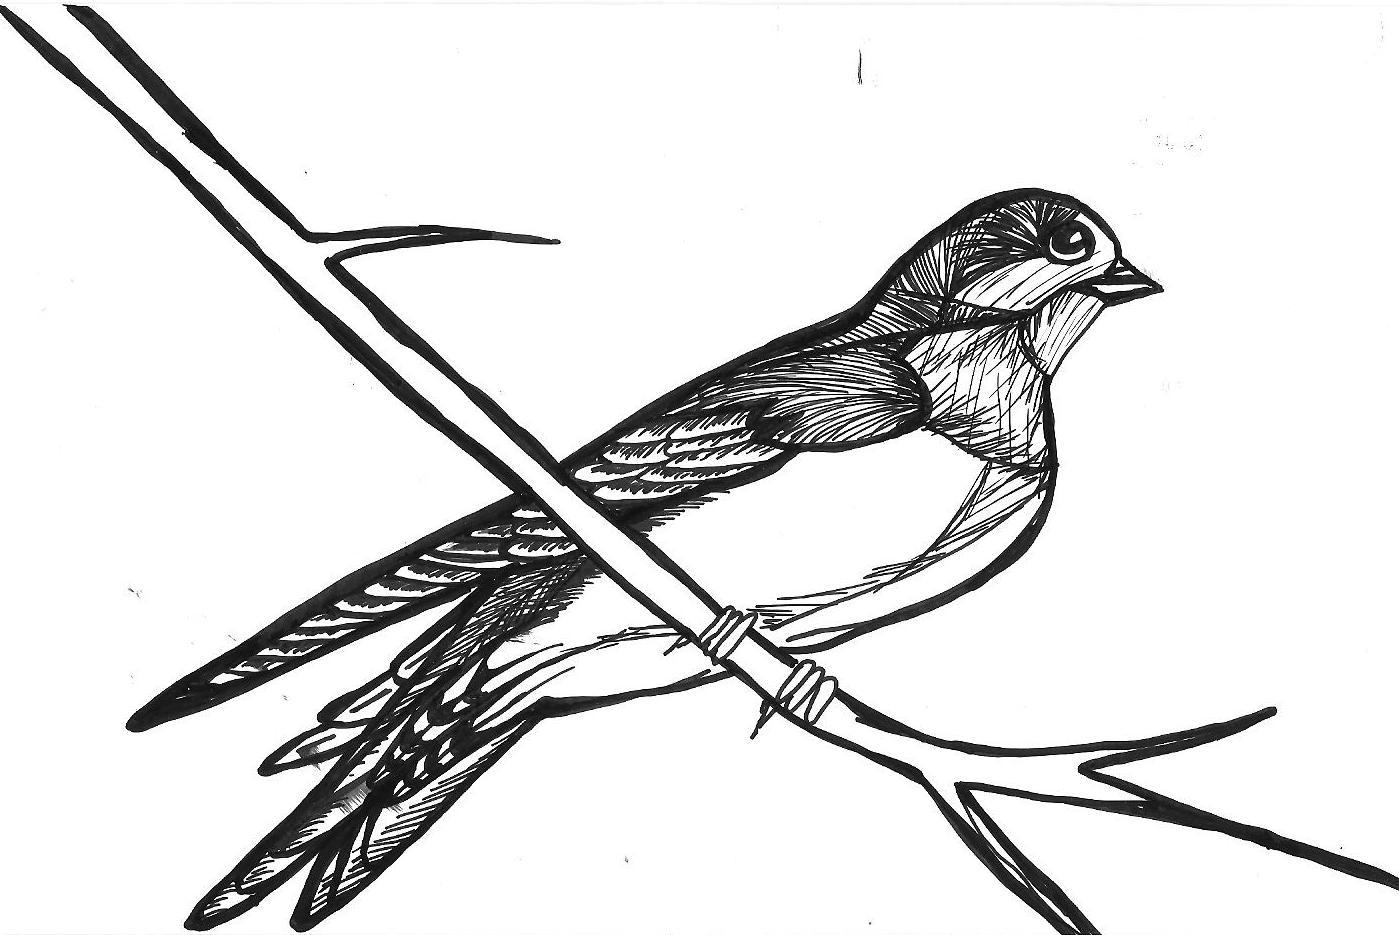 swallow bird drawing details swallow drawings google search drawings birds swallow bird drawing